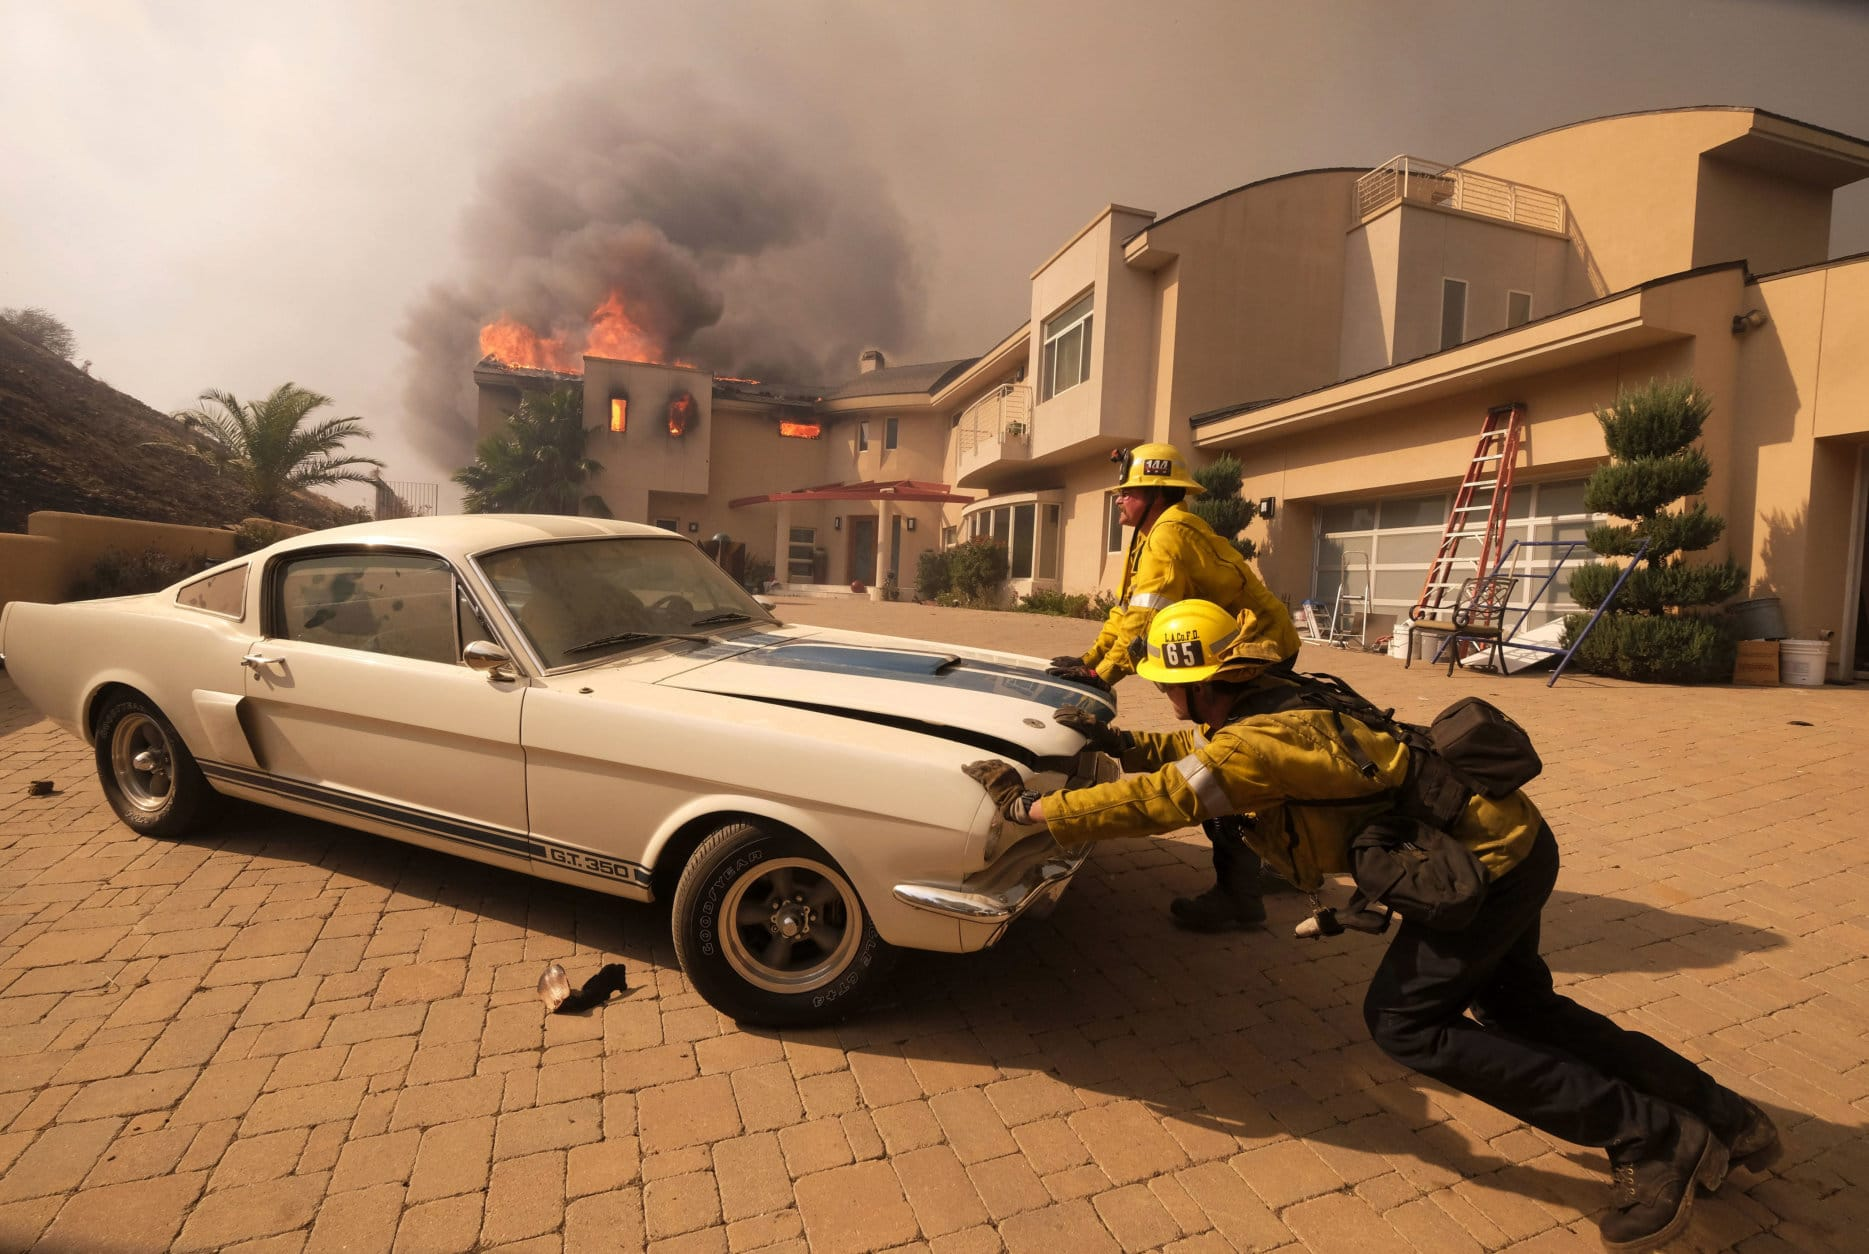 Firefighters push a car from a garage as a wildfire fire burns a home in Malibu, Calif., on Nov. 9, 2018. (AP Photo/Ringo H.W. Chiu)